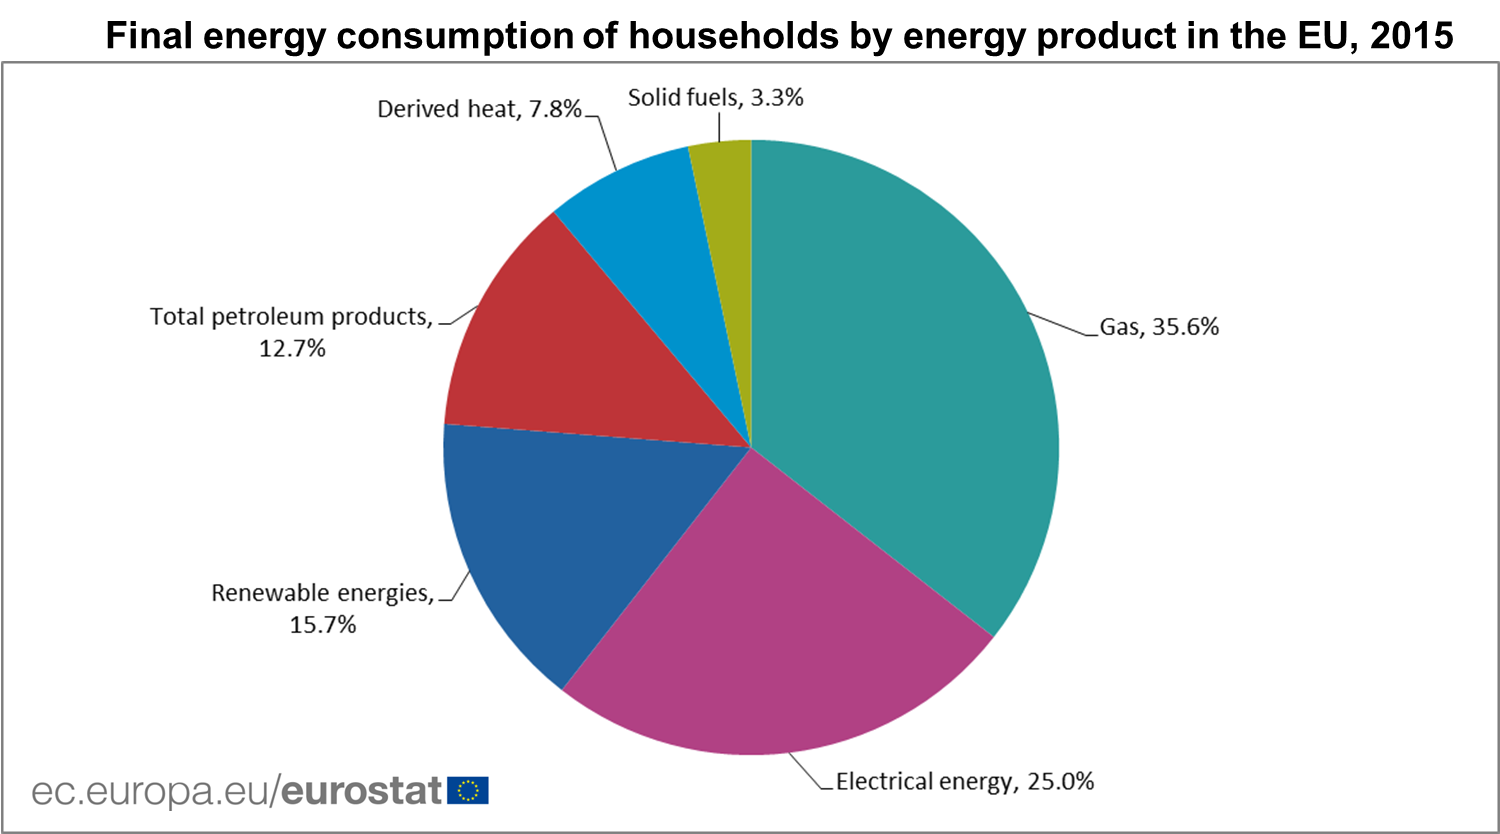 Final Energy Consumption Of Households By Energy Product, 2015 .